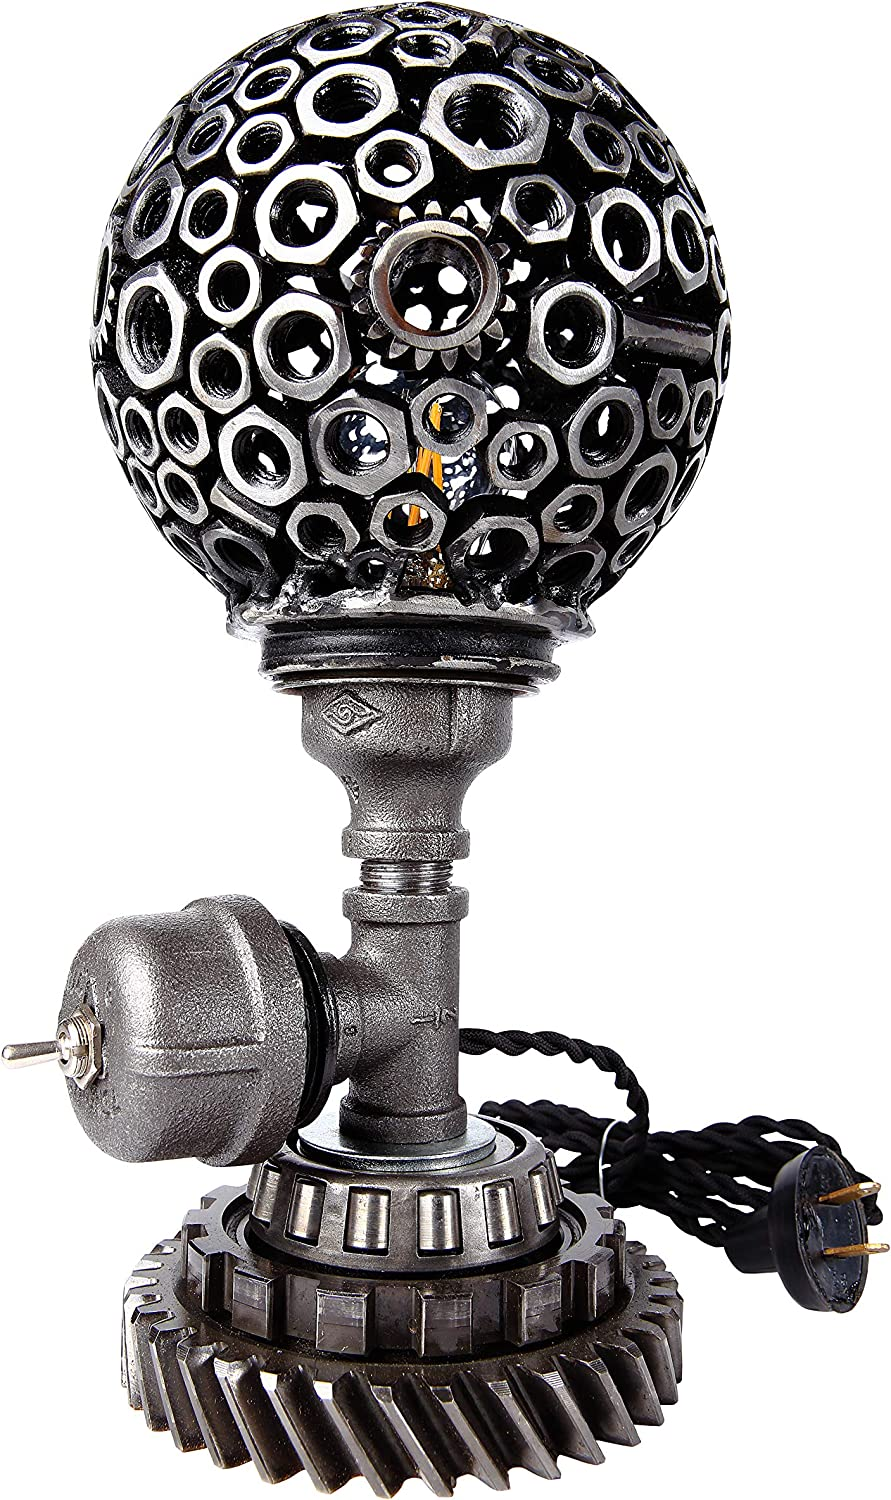 Savage Metal - Industrial Steampunk Lamp - Sphere Rustic Vintage Antique Farmhouse Aesthetic Retro Home Decor - Ideal for Bedroom, Living Room, Office, Bed Side Table, Nightstand - Made in America